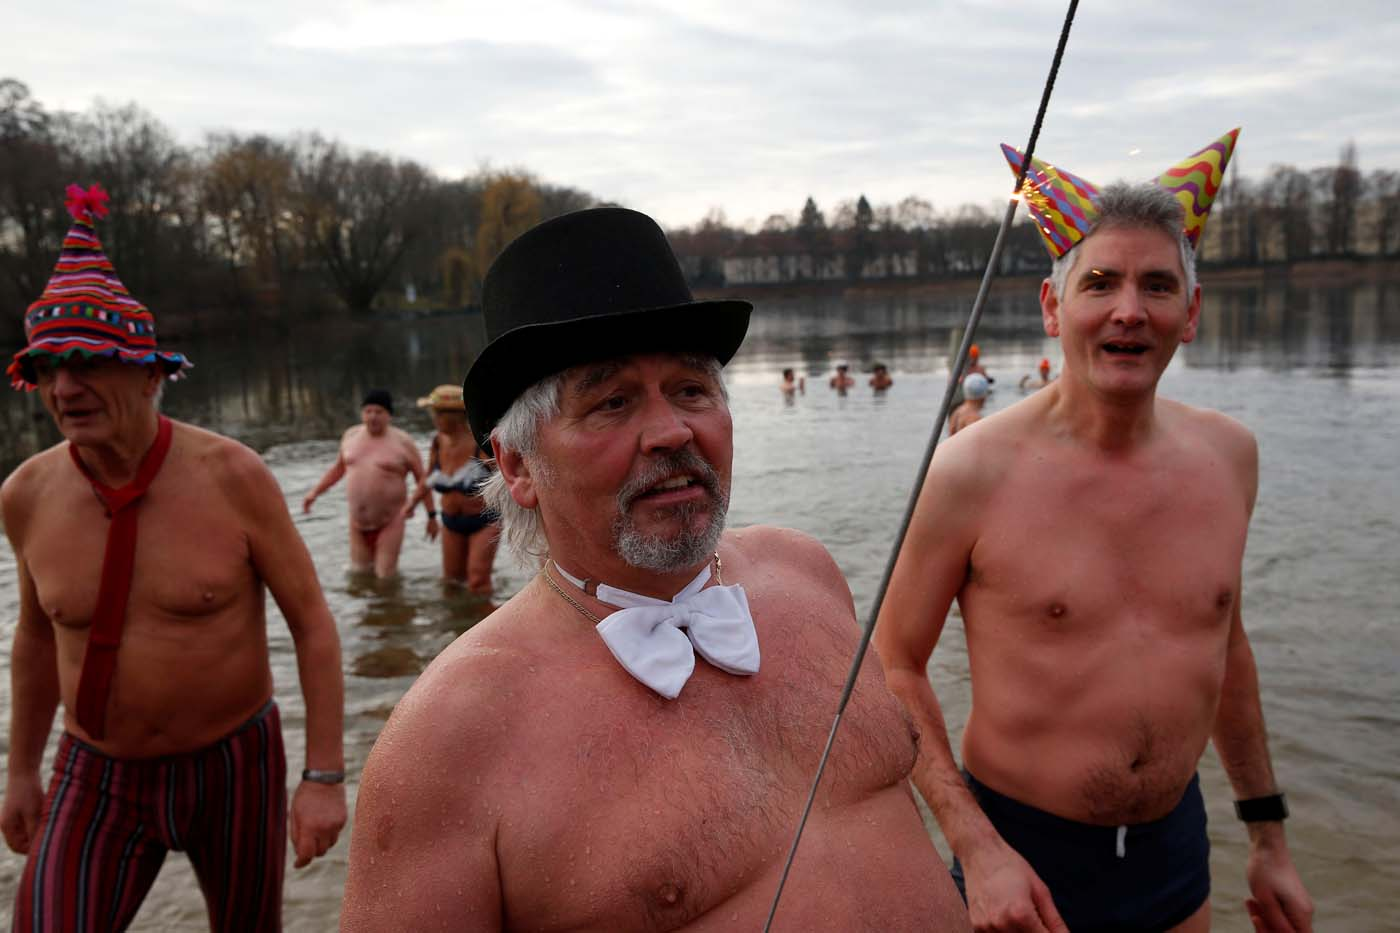 Members of the Berliner Seehunde (Berlin Seals) ice swimmers club walk out after taking a dip in lake Orankesee during their traditional New Year swimming event in Berlin, Germany, January 1, 2017.       REUTERS/Fabrizio Bensch